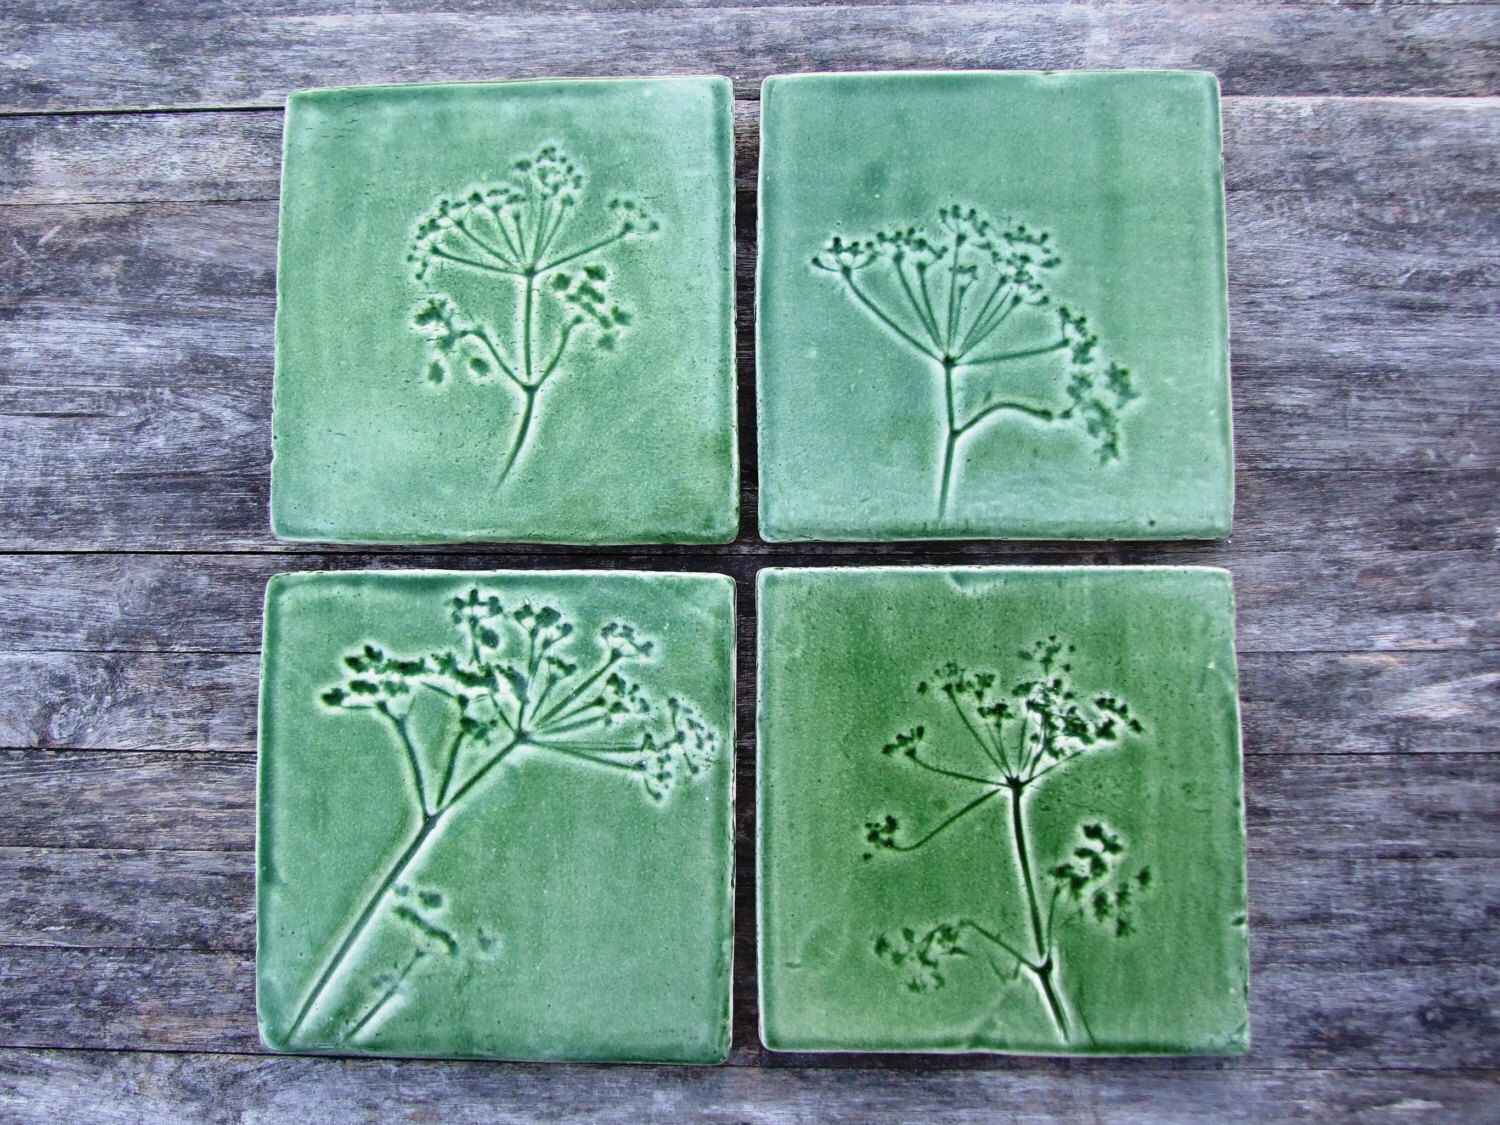 Green cow parsley ceramic tile handmade queen annes lace green cow parsley ceramic tile handmade queen annes lace botanical tiles kitchen bathroom dailygadgetfo Choice Image